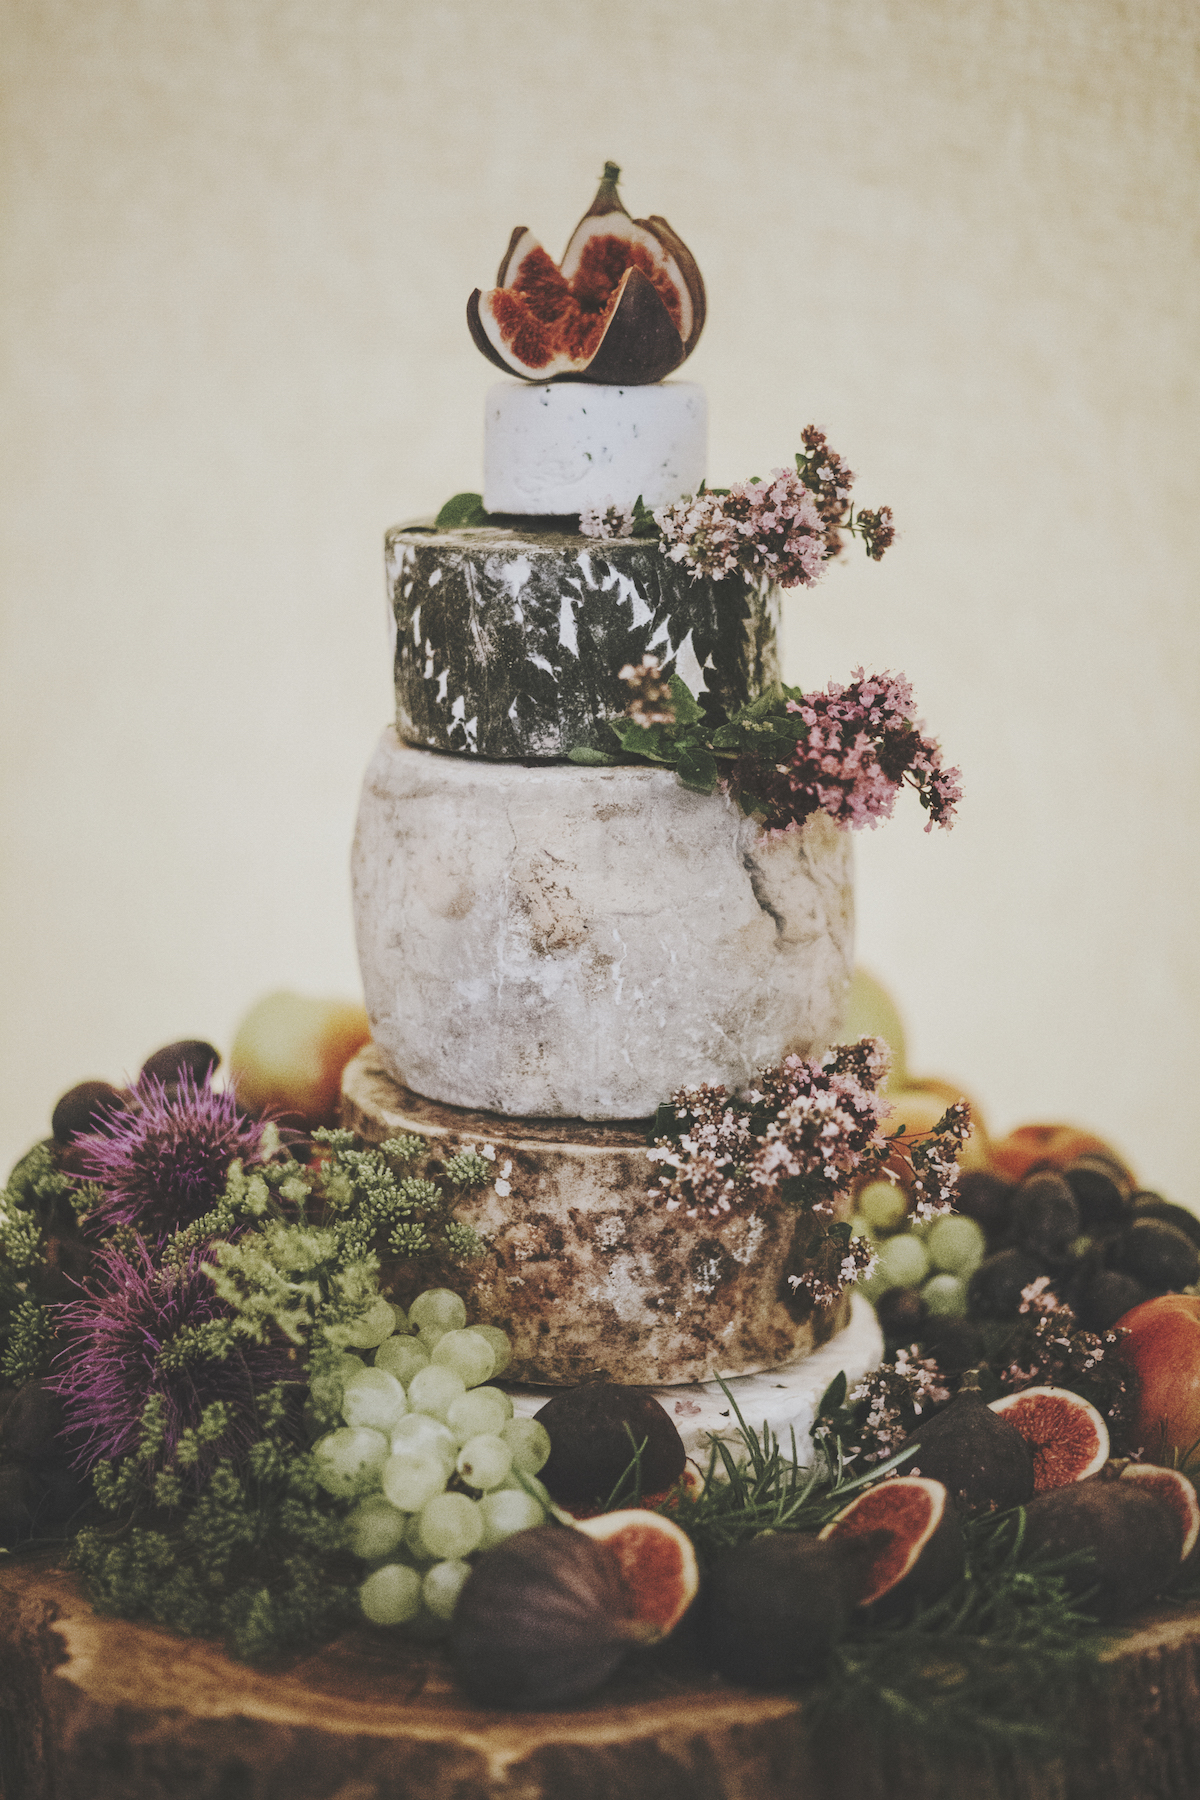 cornish-cheese-wedding-cake-bohemian-wedding-inspiration